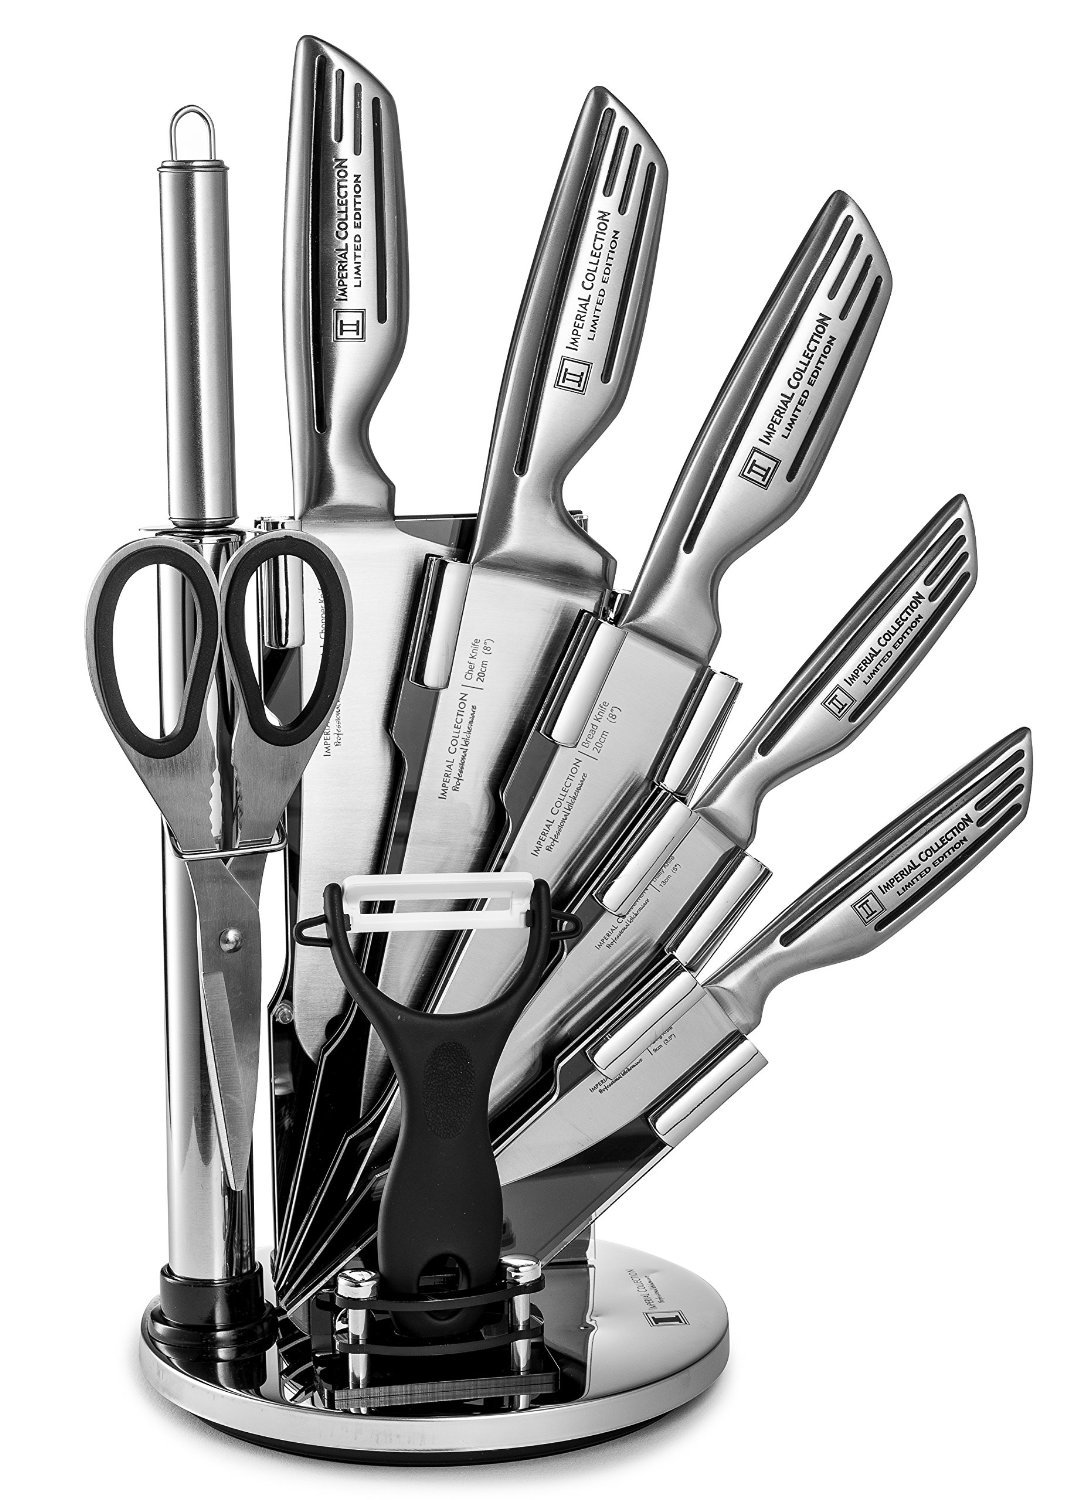 Imperial Collection KST12 9-Piece Stainless Steel Kitchen Cutlery Knife Set with Rotating Block Stand, Silver Signature by Imperial Collection